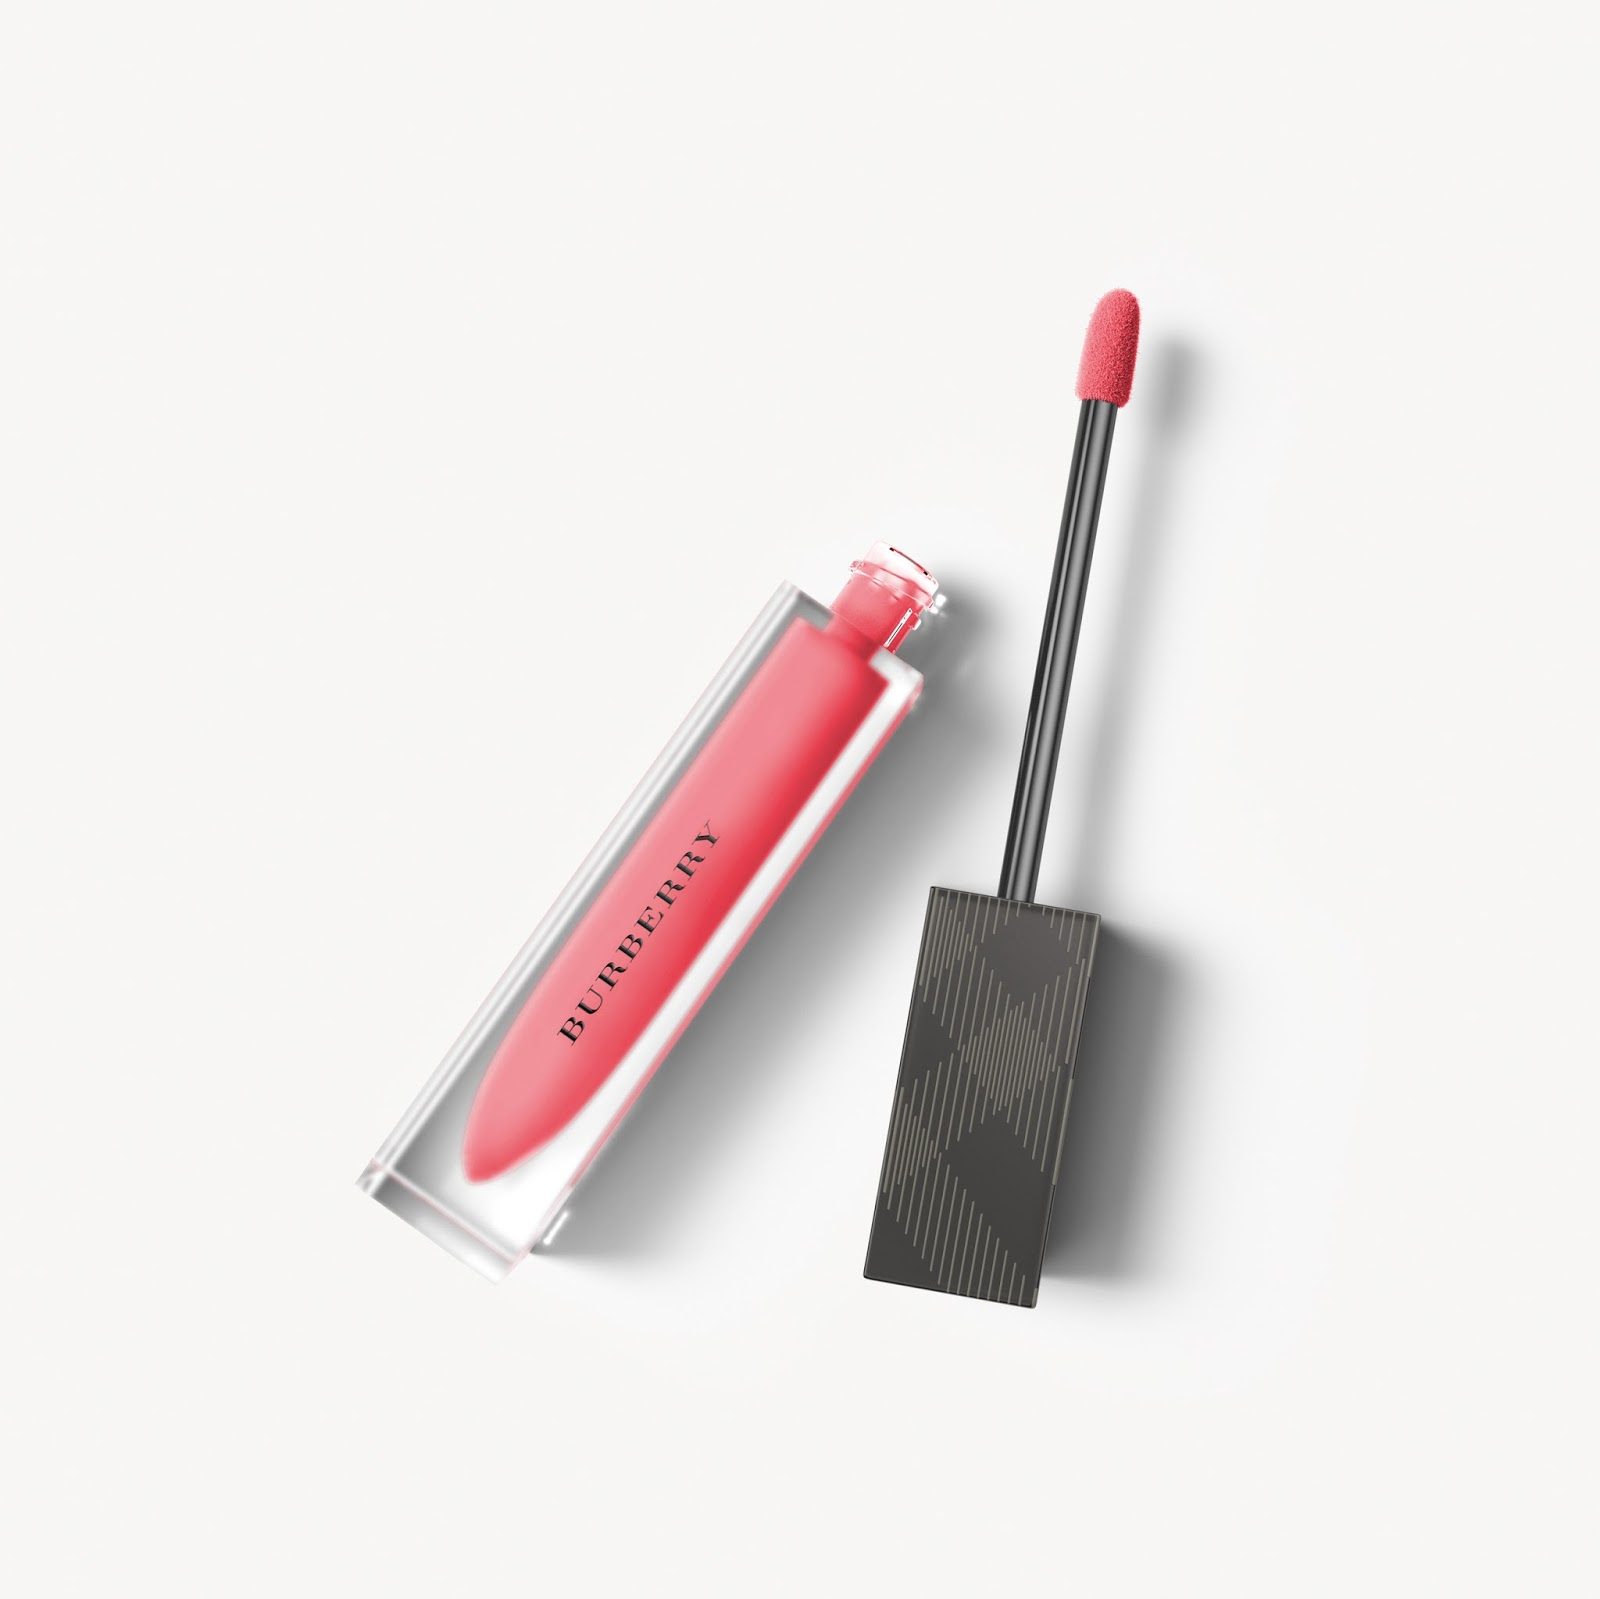 Burberry Liquid Lip Velvet iris law bright magenta no 33